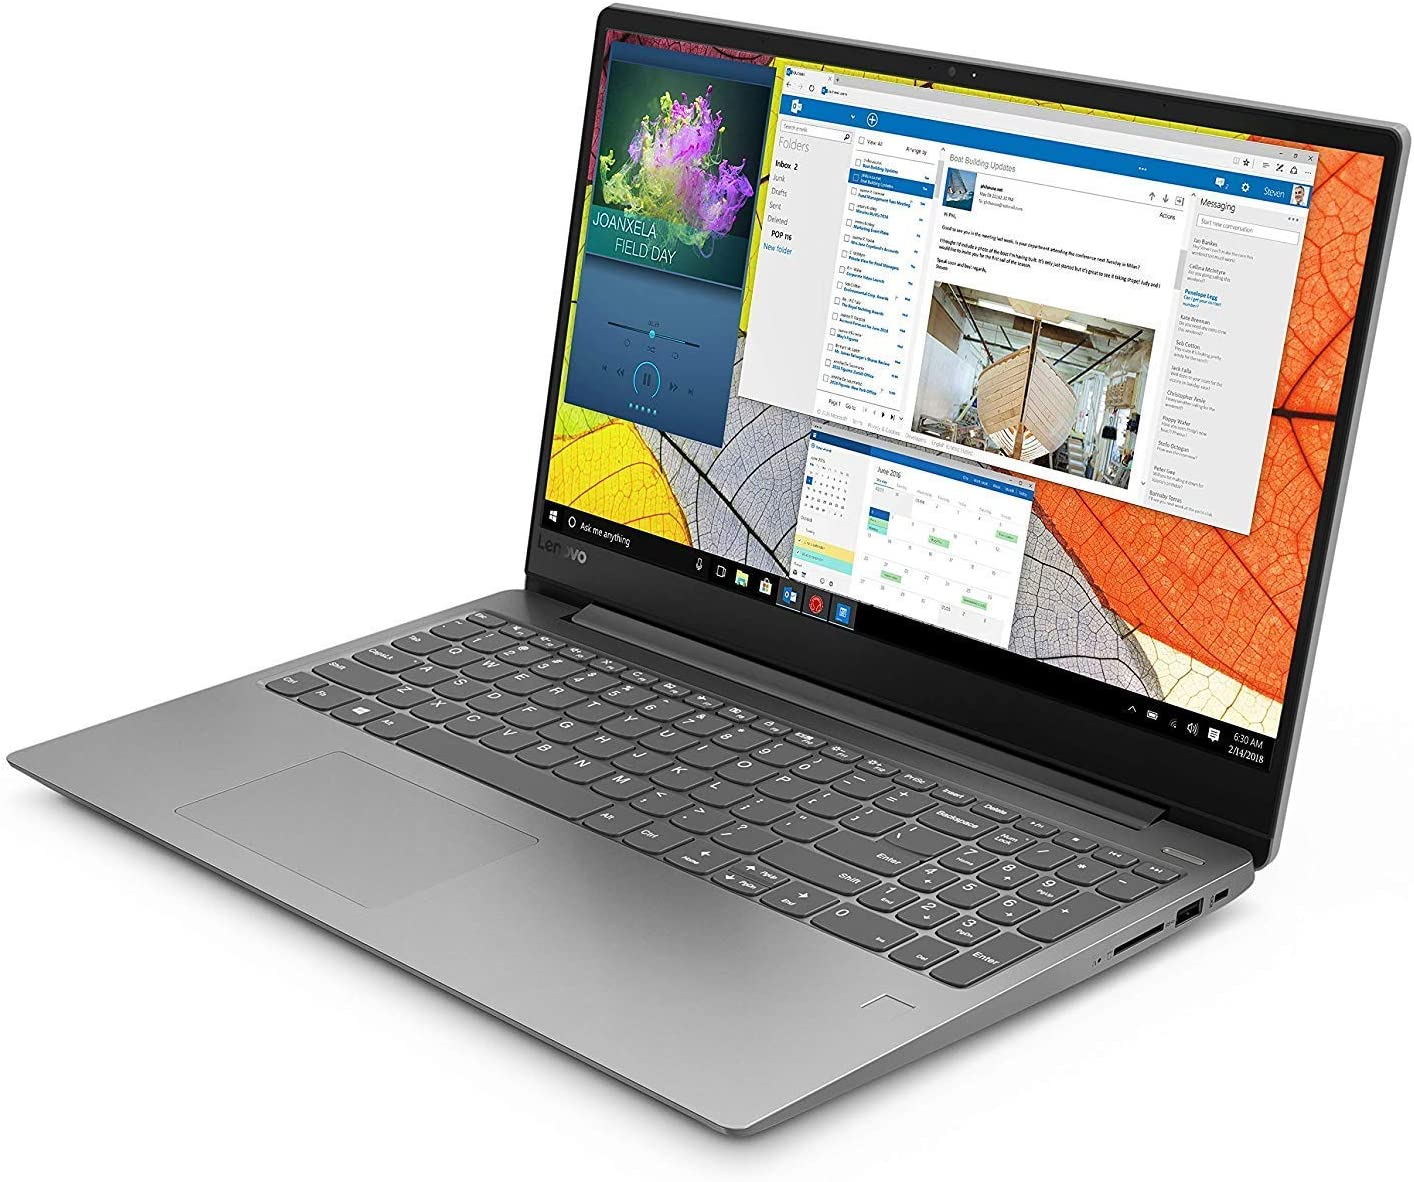 "Lenovo Ideapad 330s 15.6"" Laptop, AMD Ryzen 5 2500U Quad-Core Processor, 8GB Memory, 256GB Storage, Windows 10, Platinum Grey- 81FB00HKUS (Renewed)"